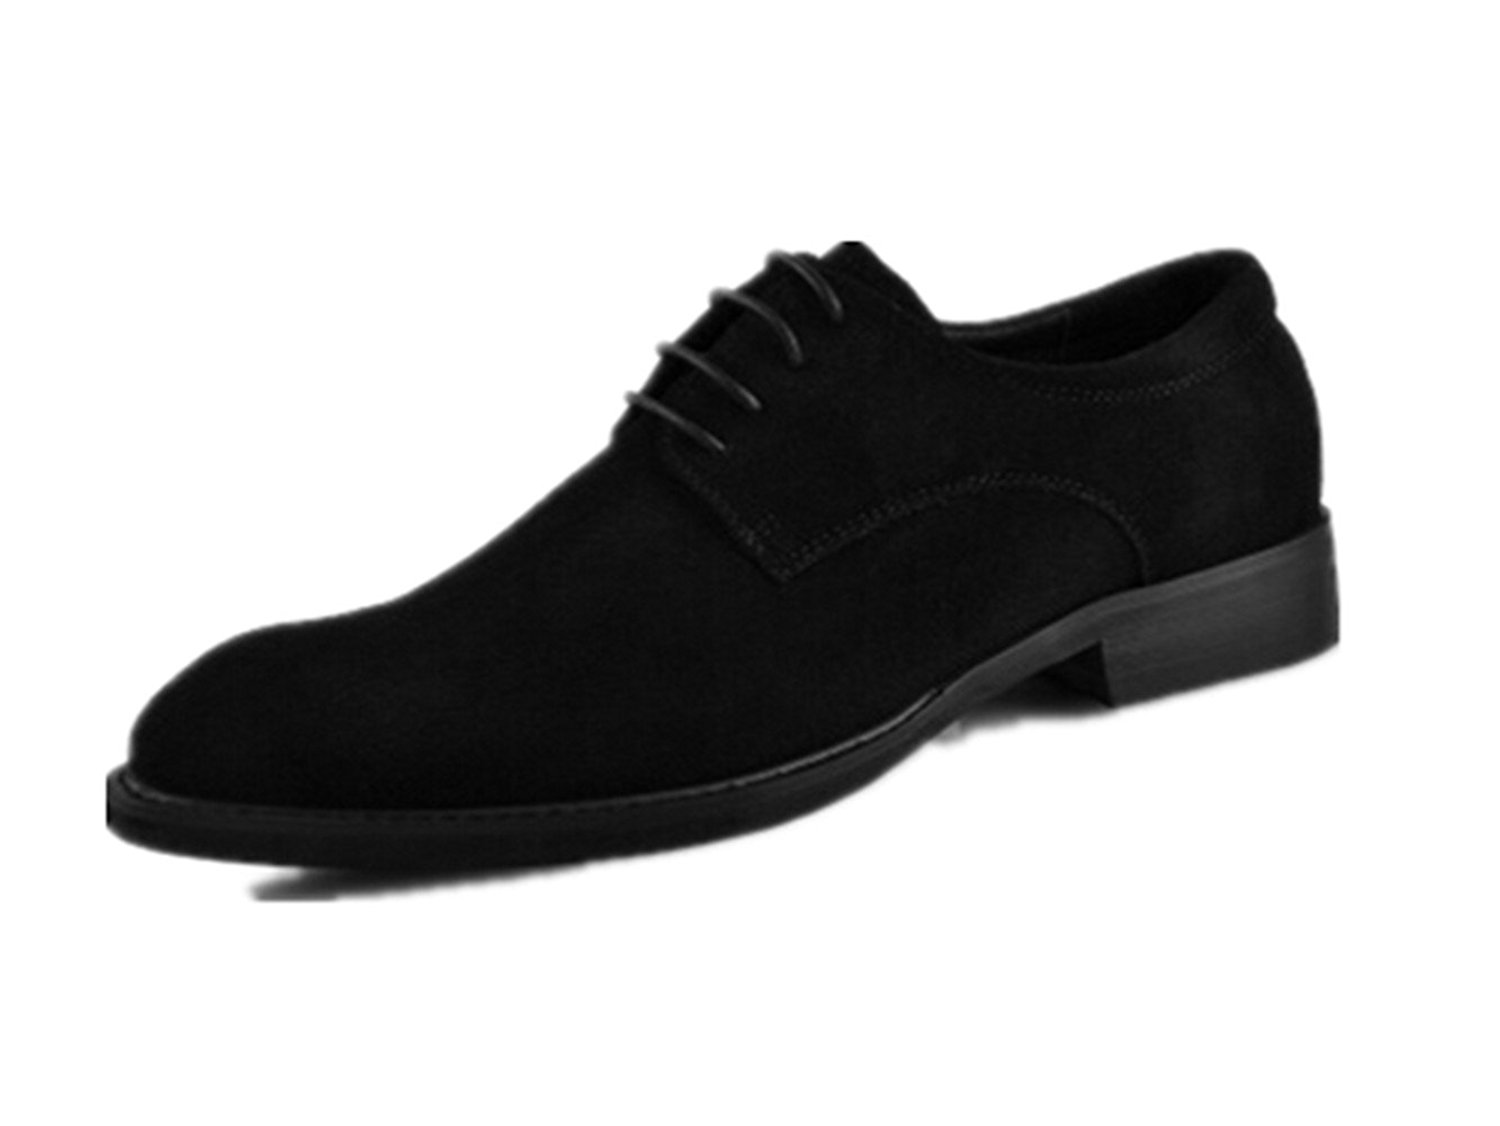 9cbc23527ec HAPPYSHOP(TM) Men s Nubuck Leather Business Dress Shoe Casual Oxford  Pointed Lace-up